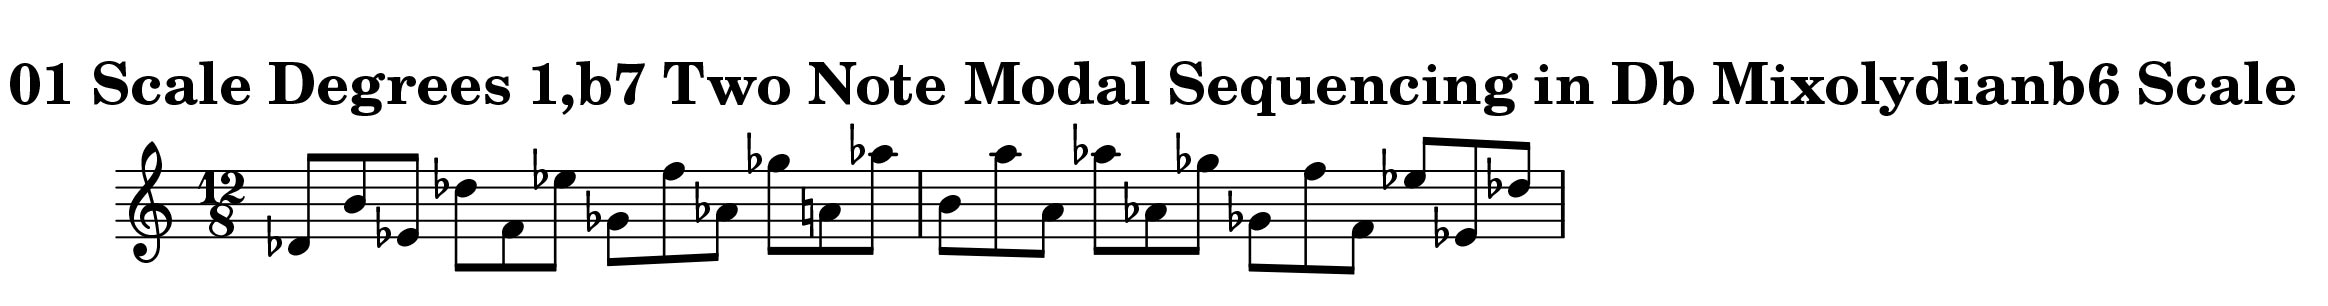 Db Mixolydian Scale Modal Sequencing 2 Note One_Octave Ascending and Descending Modal Sequencing 2 Note Group 4 for all instrumentalist by Bruce Arnold for Muse Eek Publishing Company